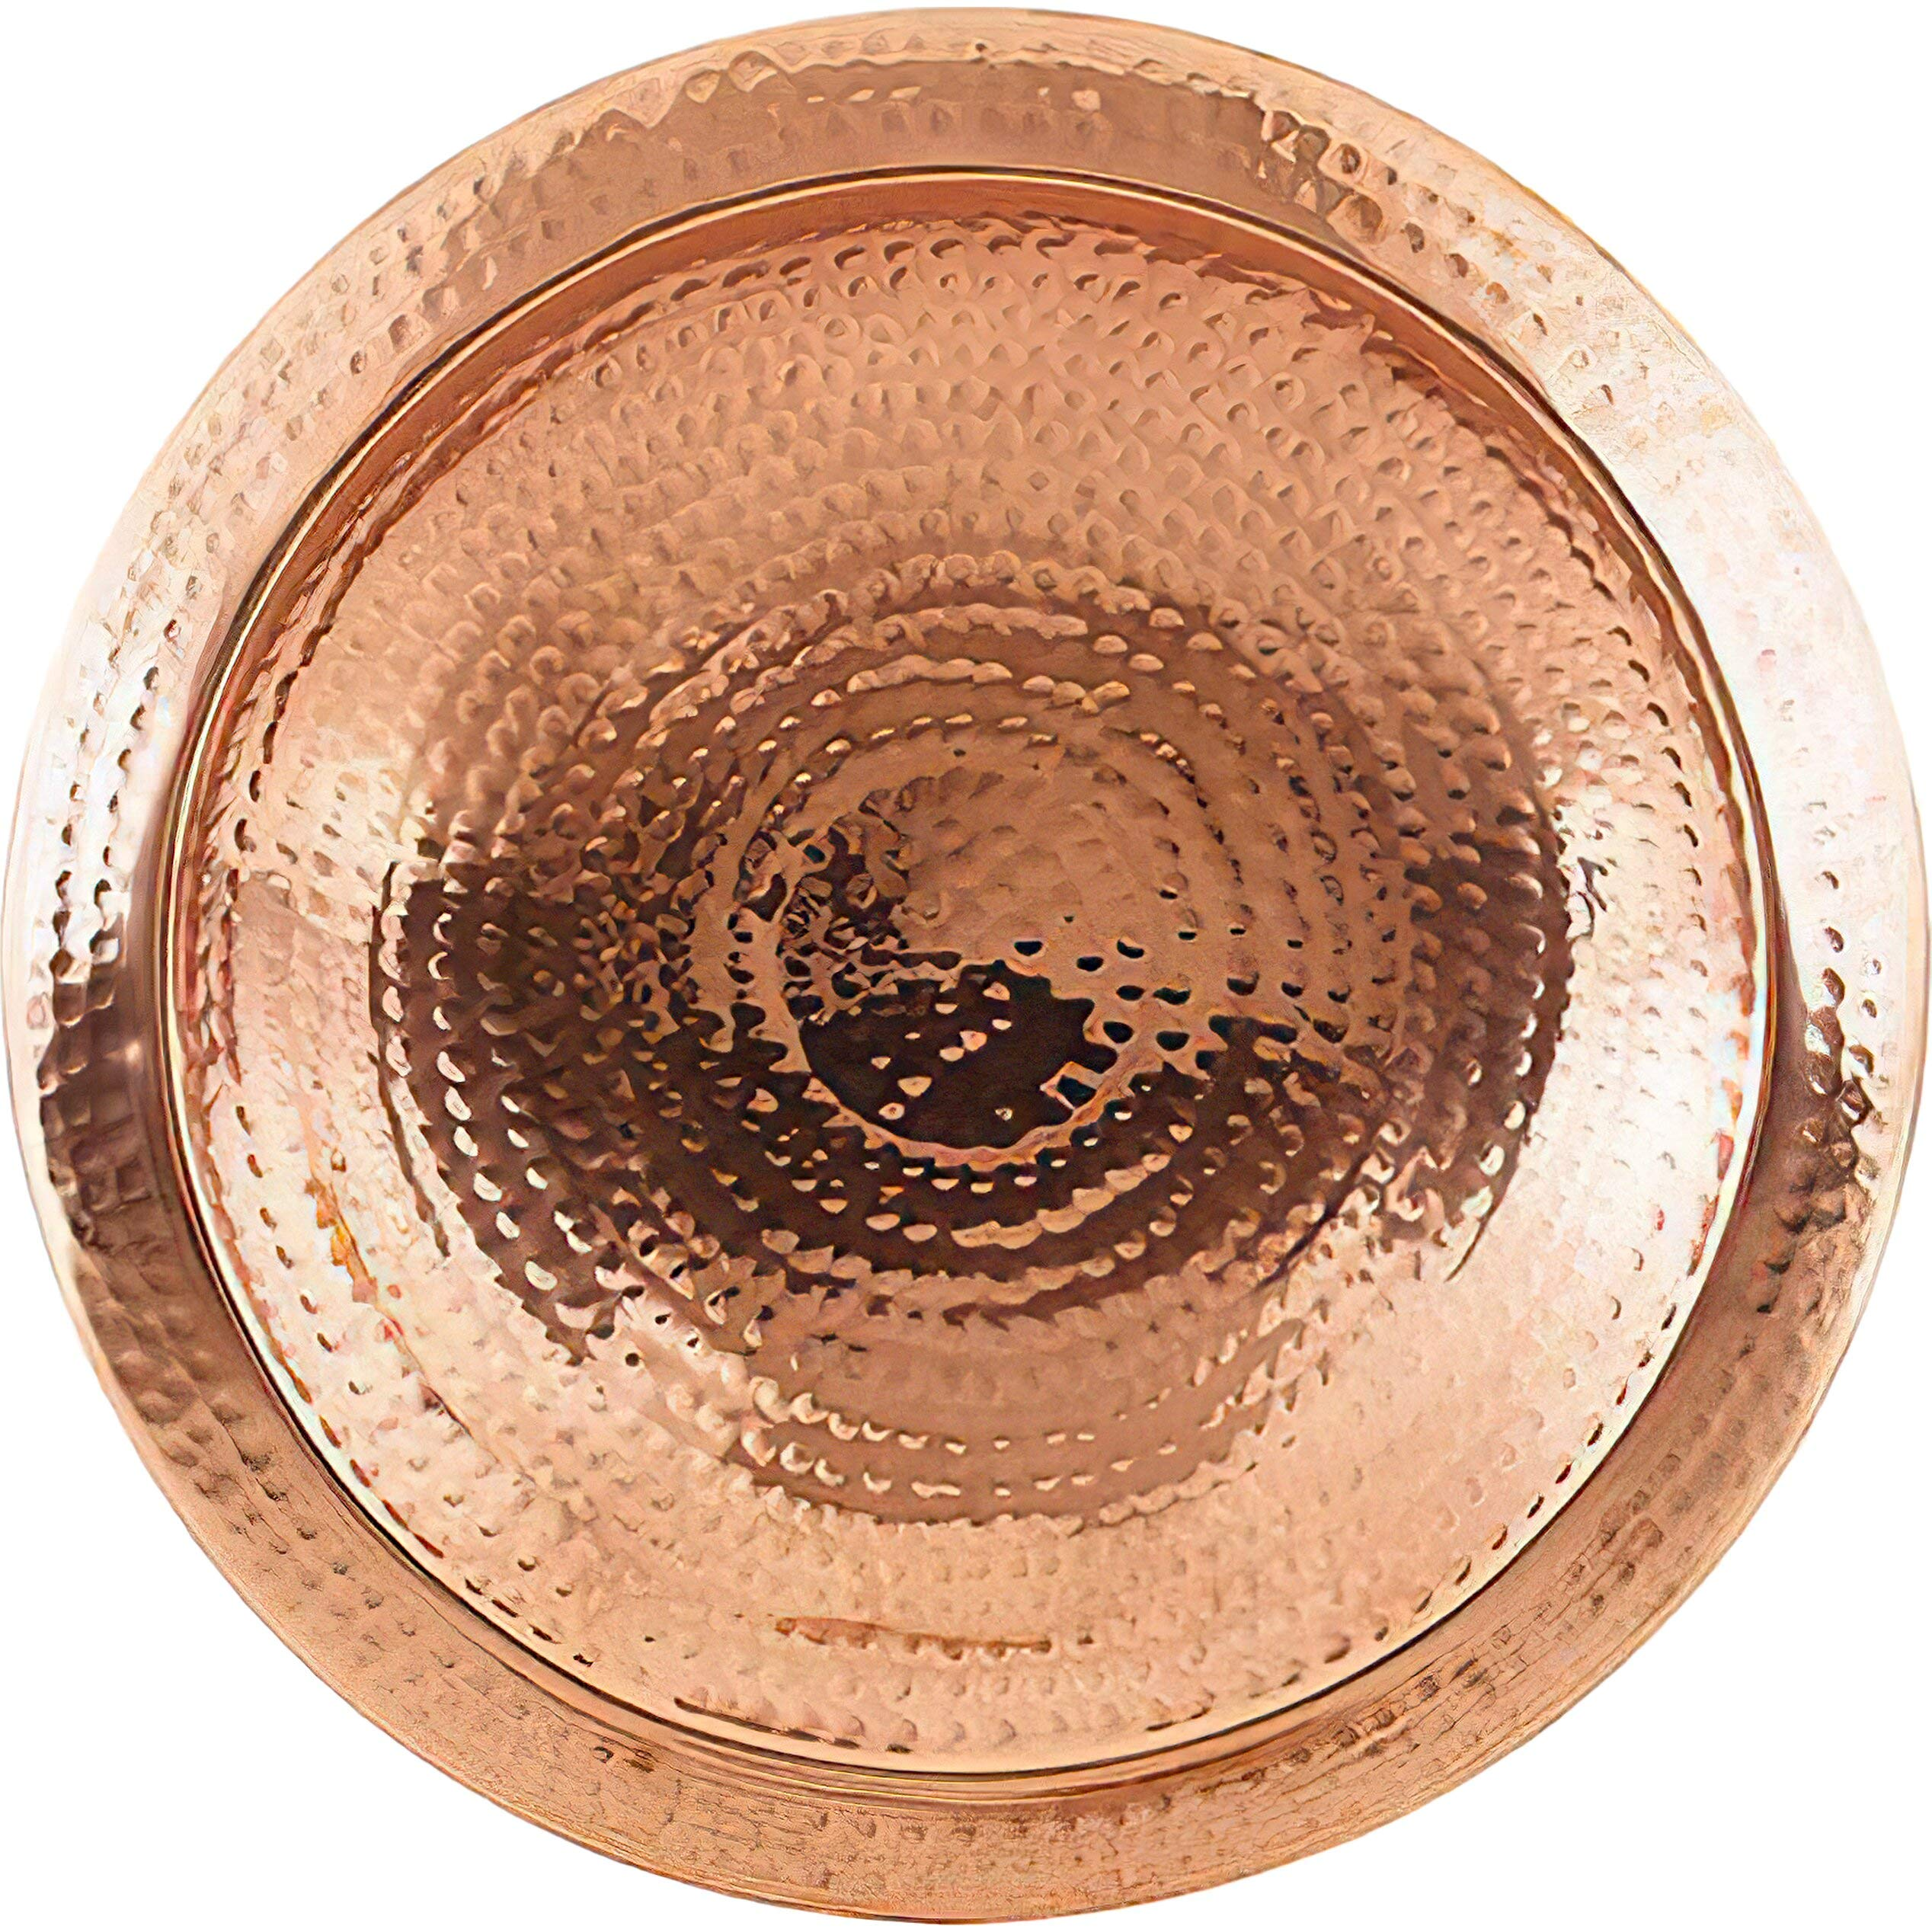 Achla Hammered Copper Bowl with Rim by Achla